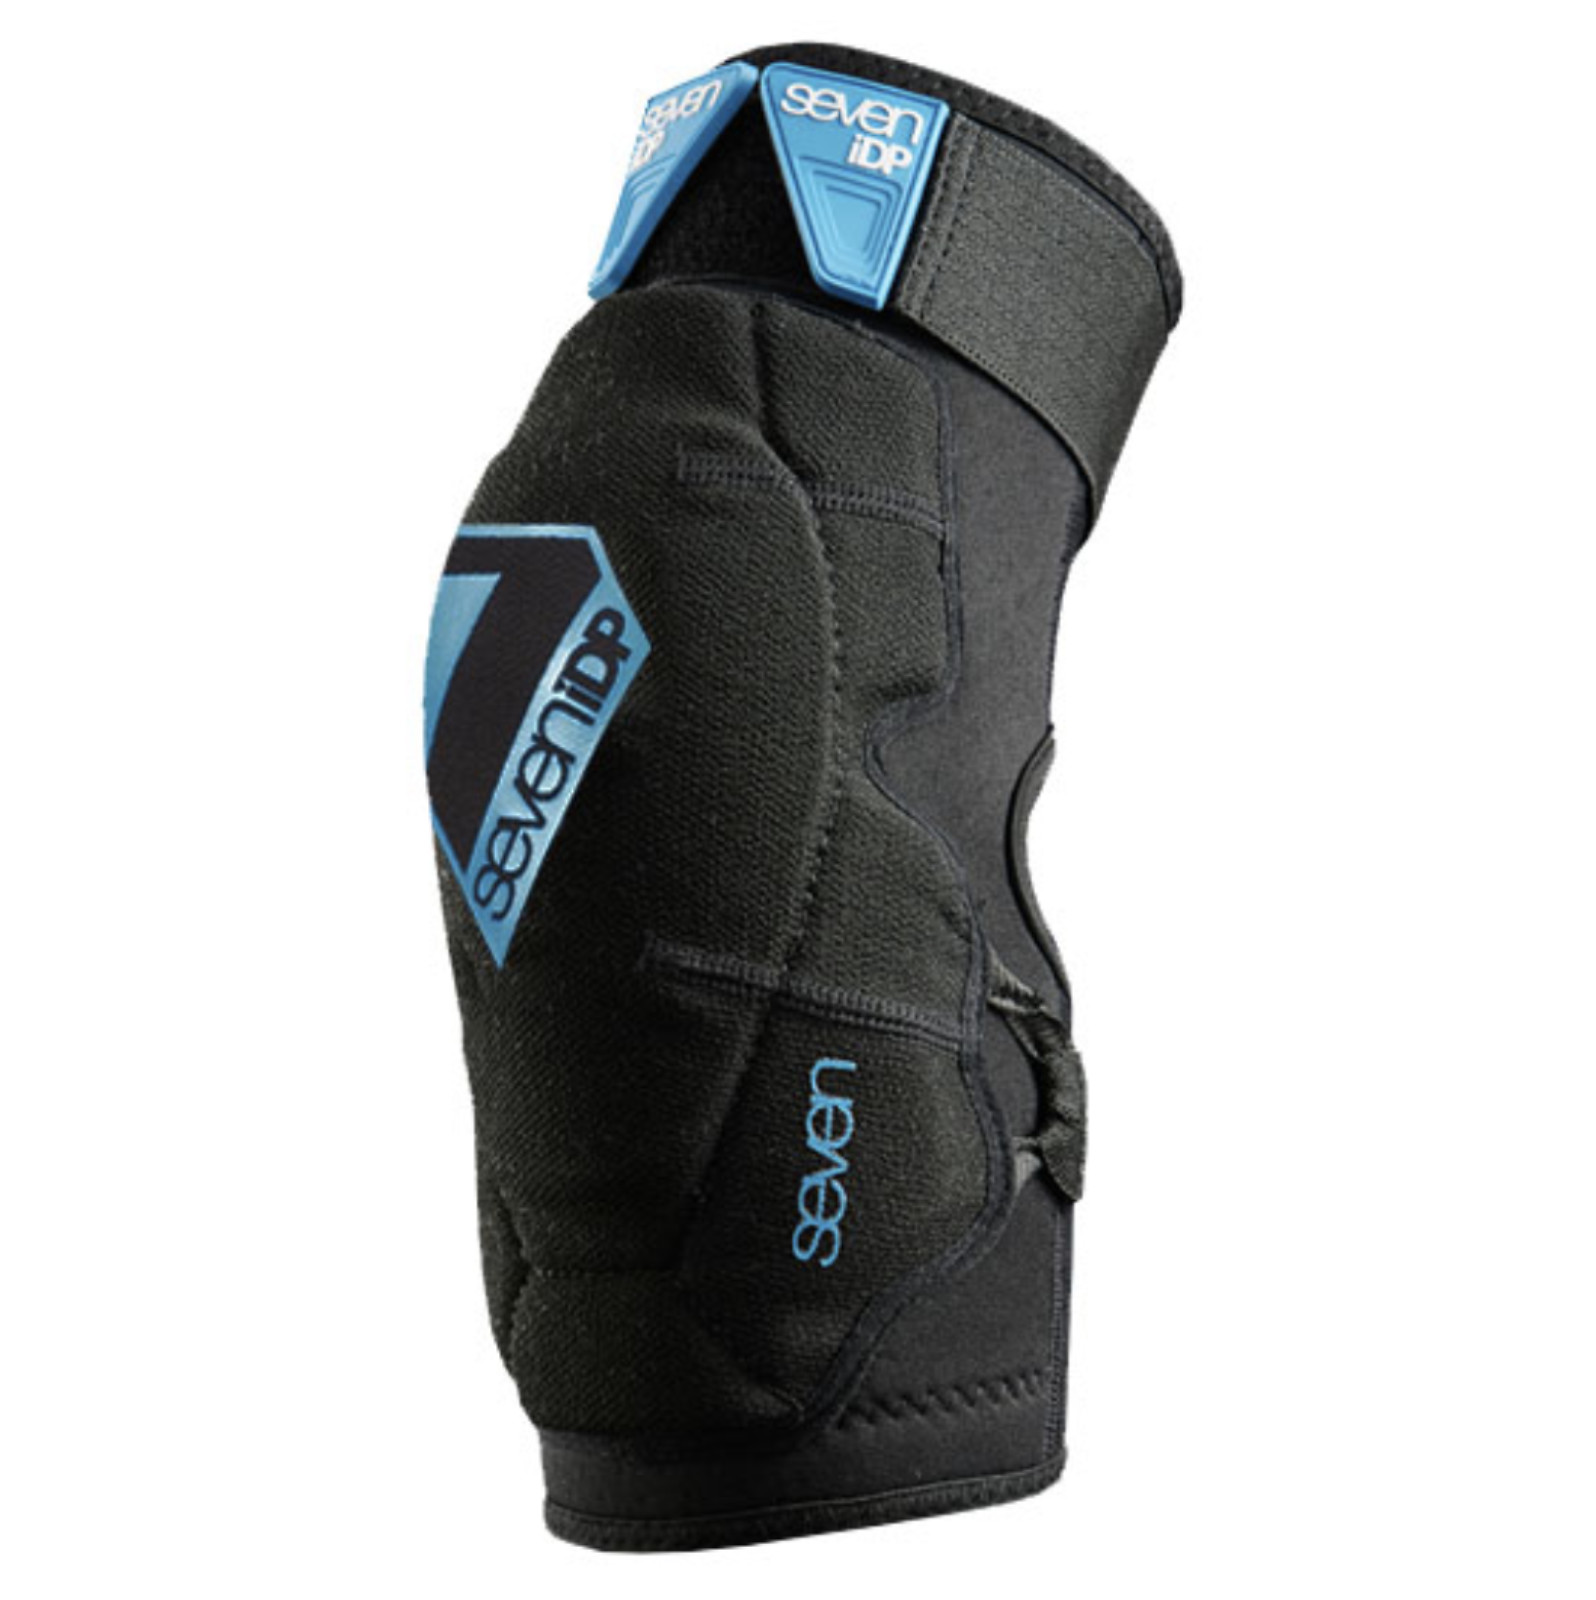 7iDP Youth Flex Knee Pad